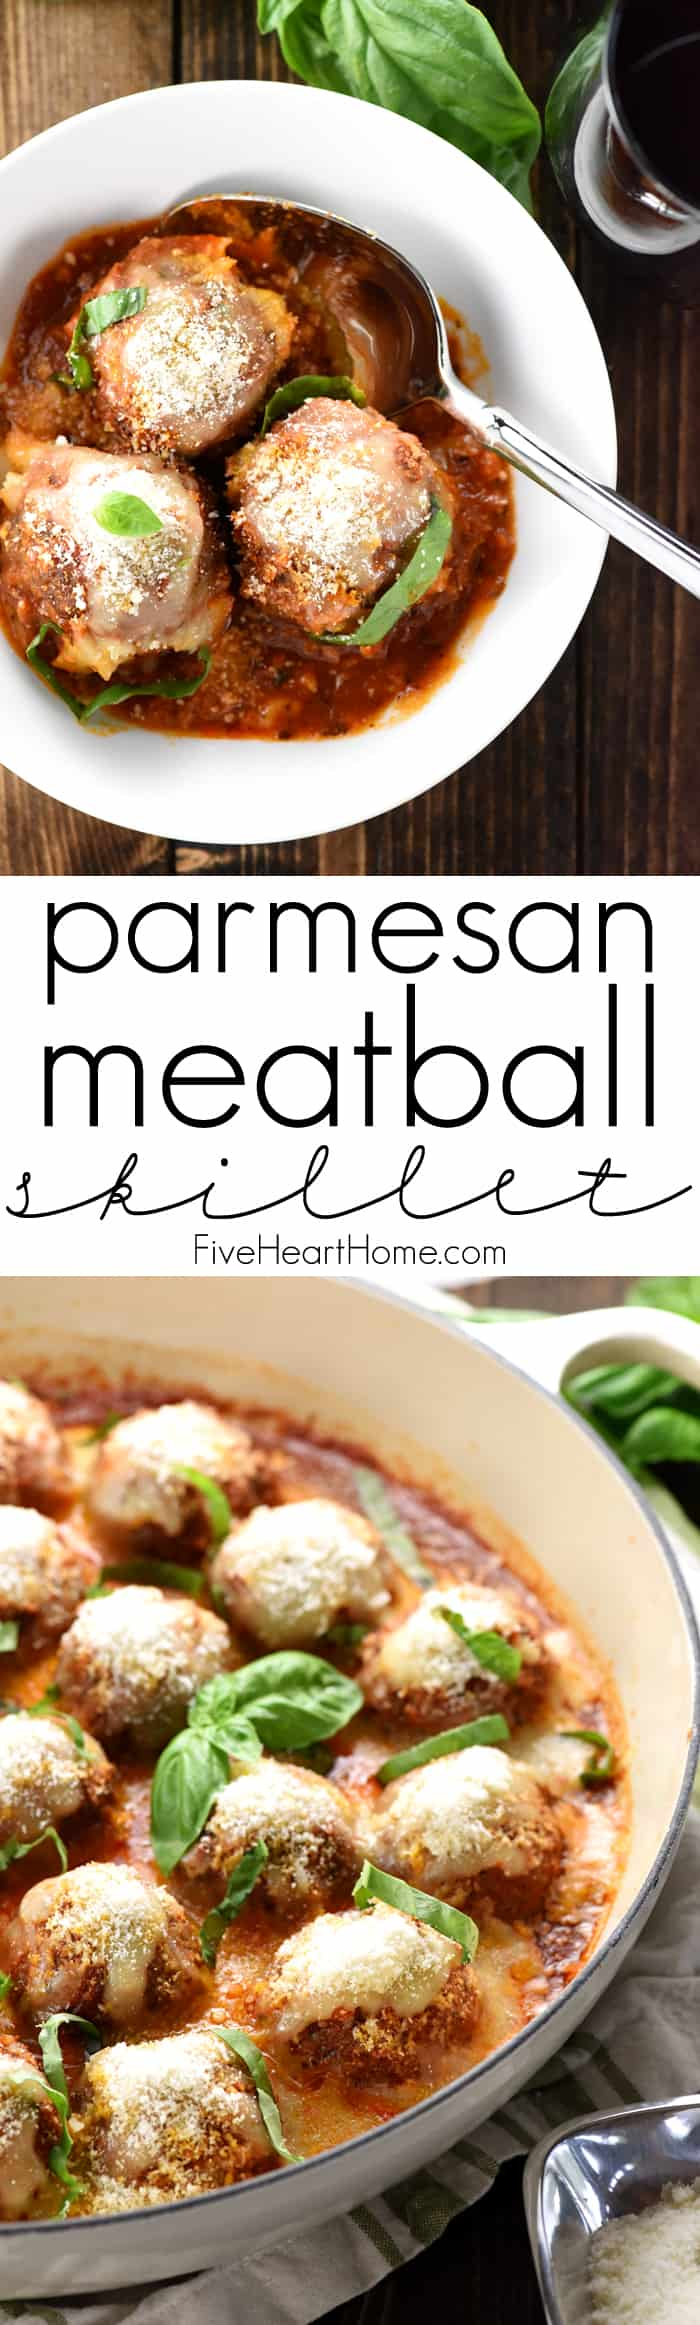 Parmesan Meatball Skillet Collage with Text Overlay